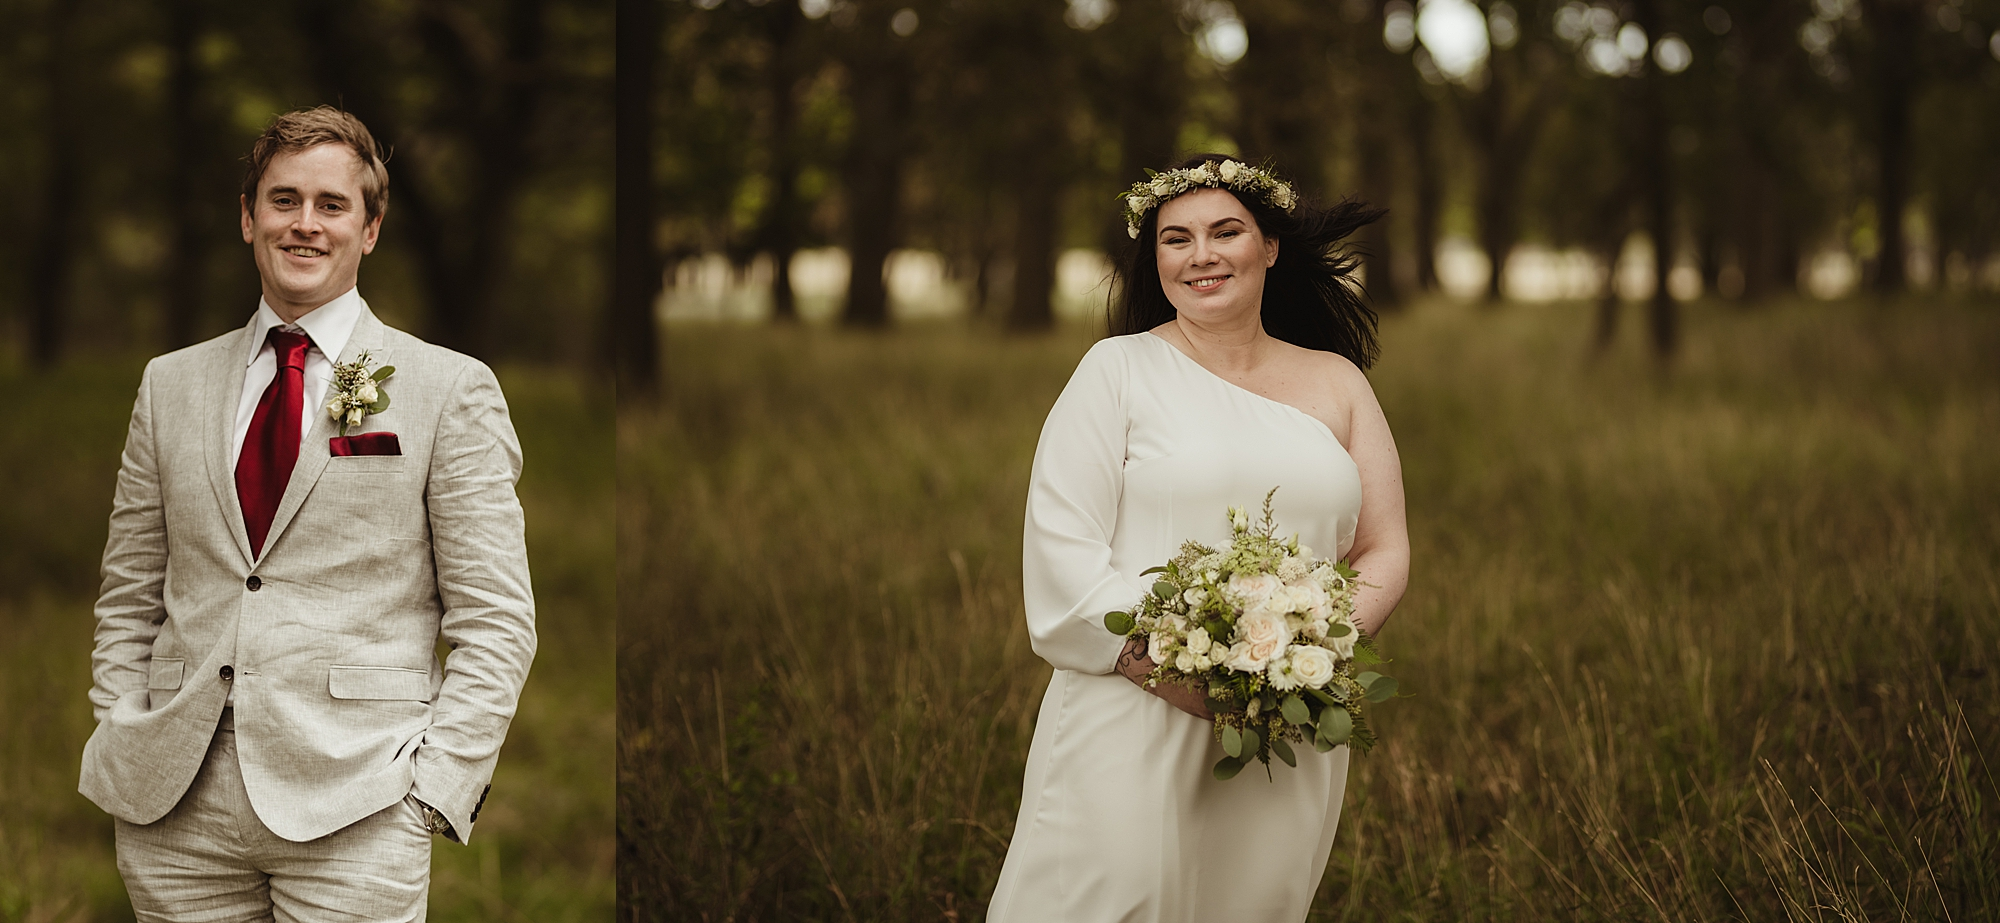 Dublin Wedding Anglersrest Bride Photographer Venue